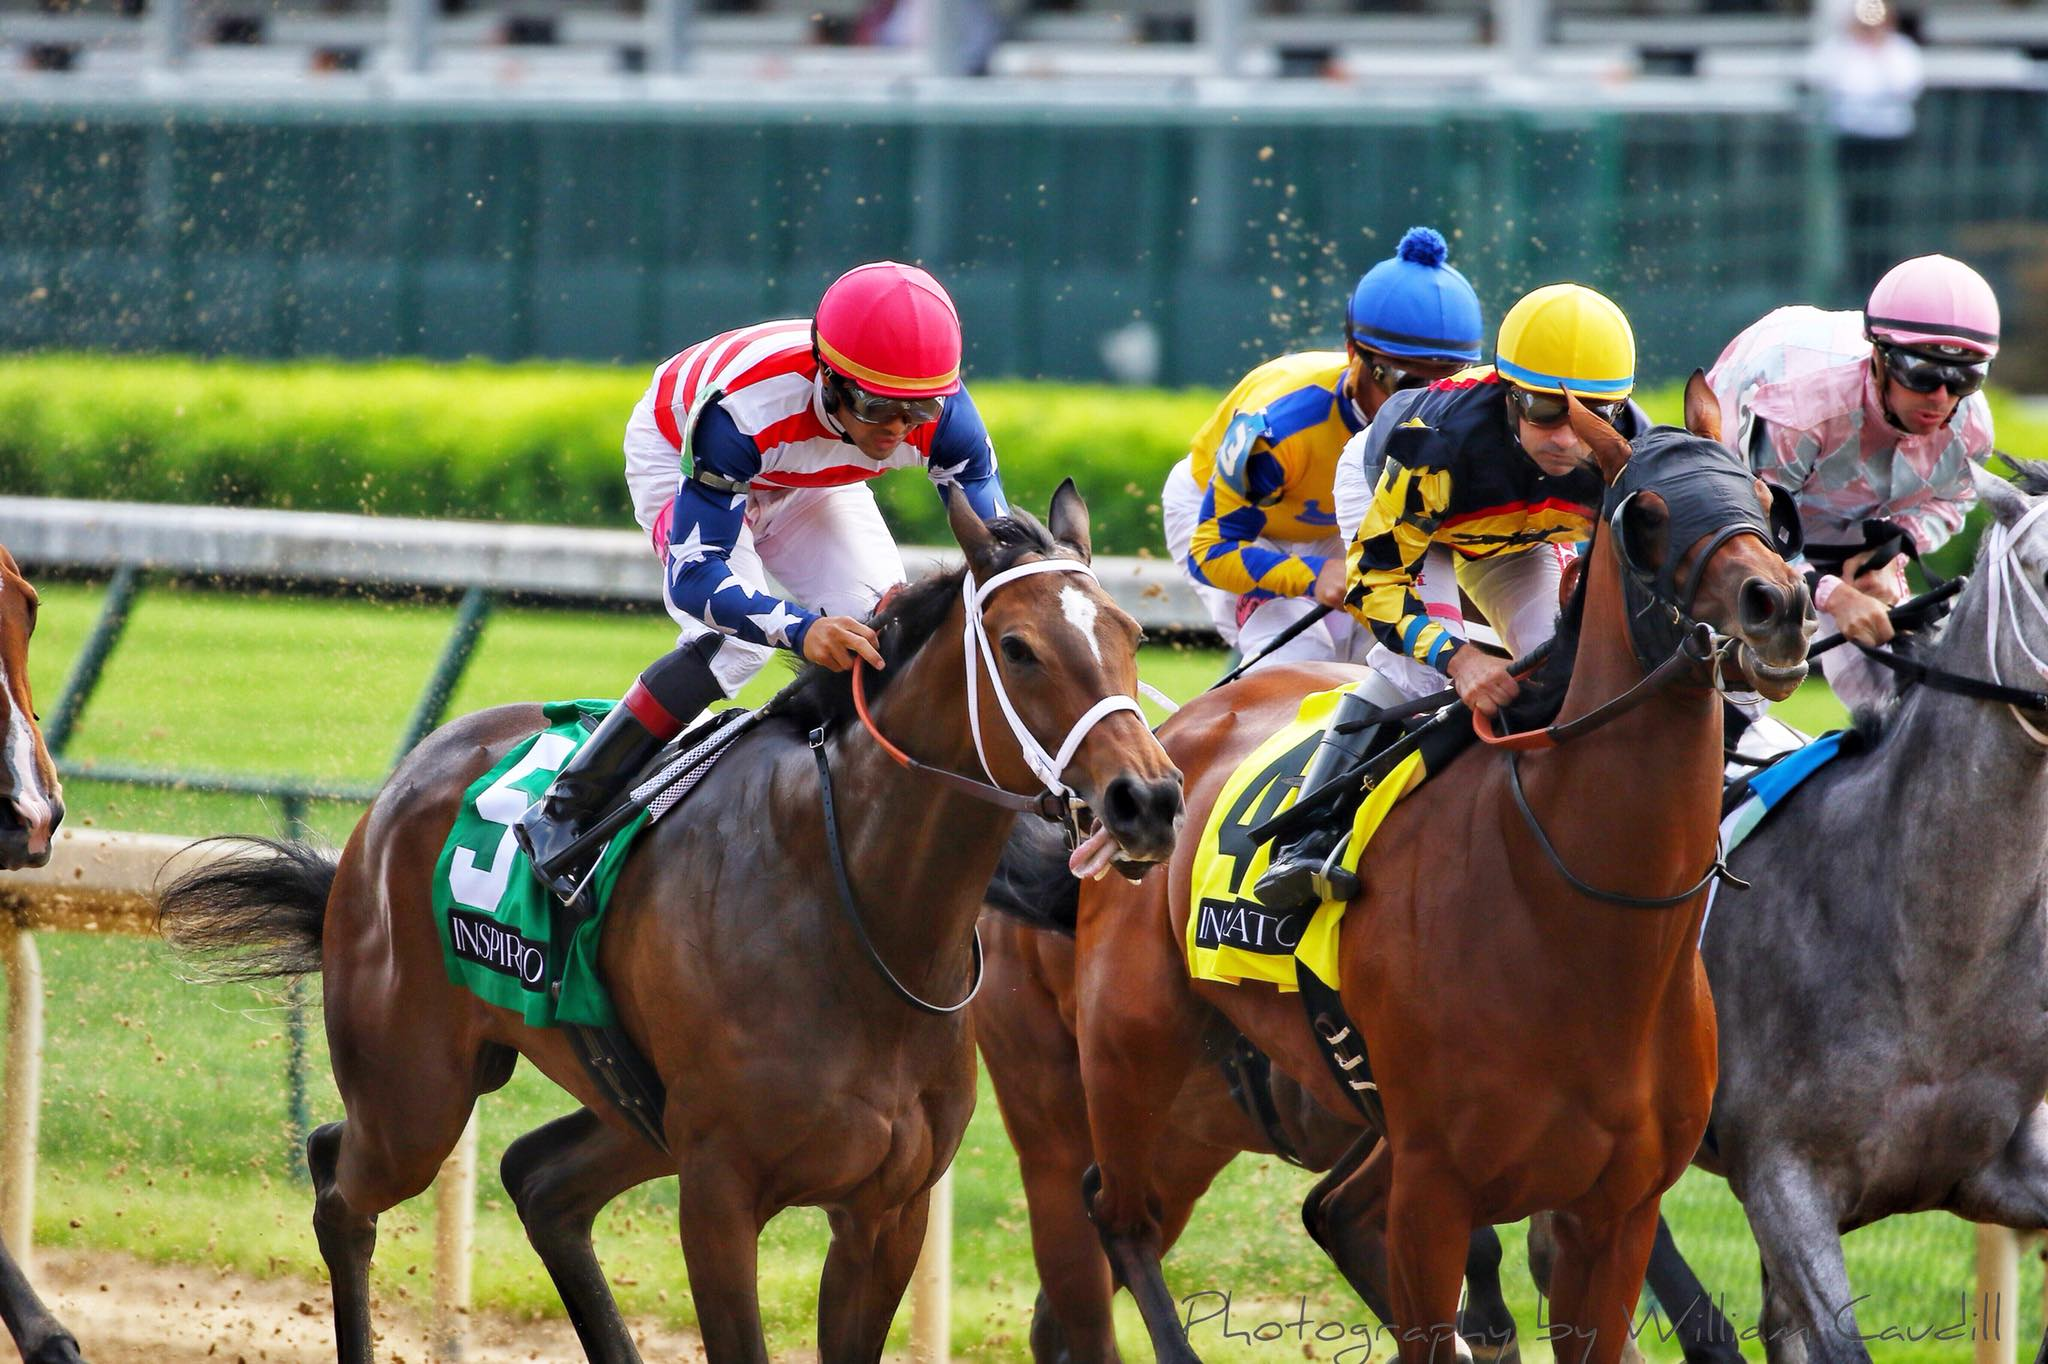 Horse Race History Highest Payout Odds